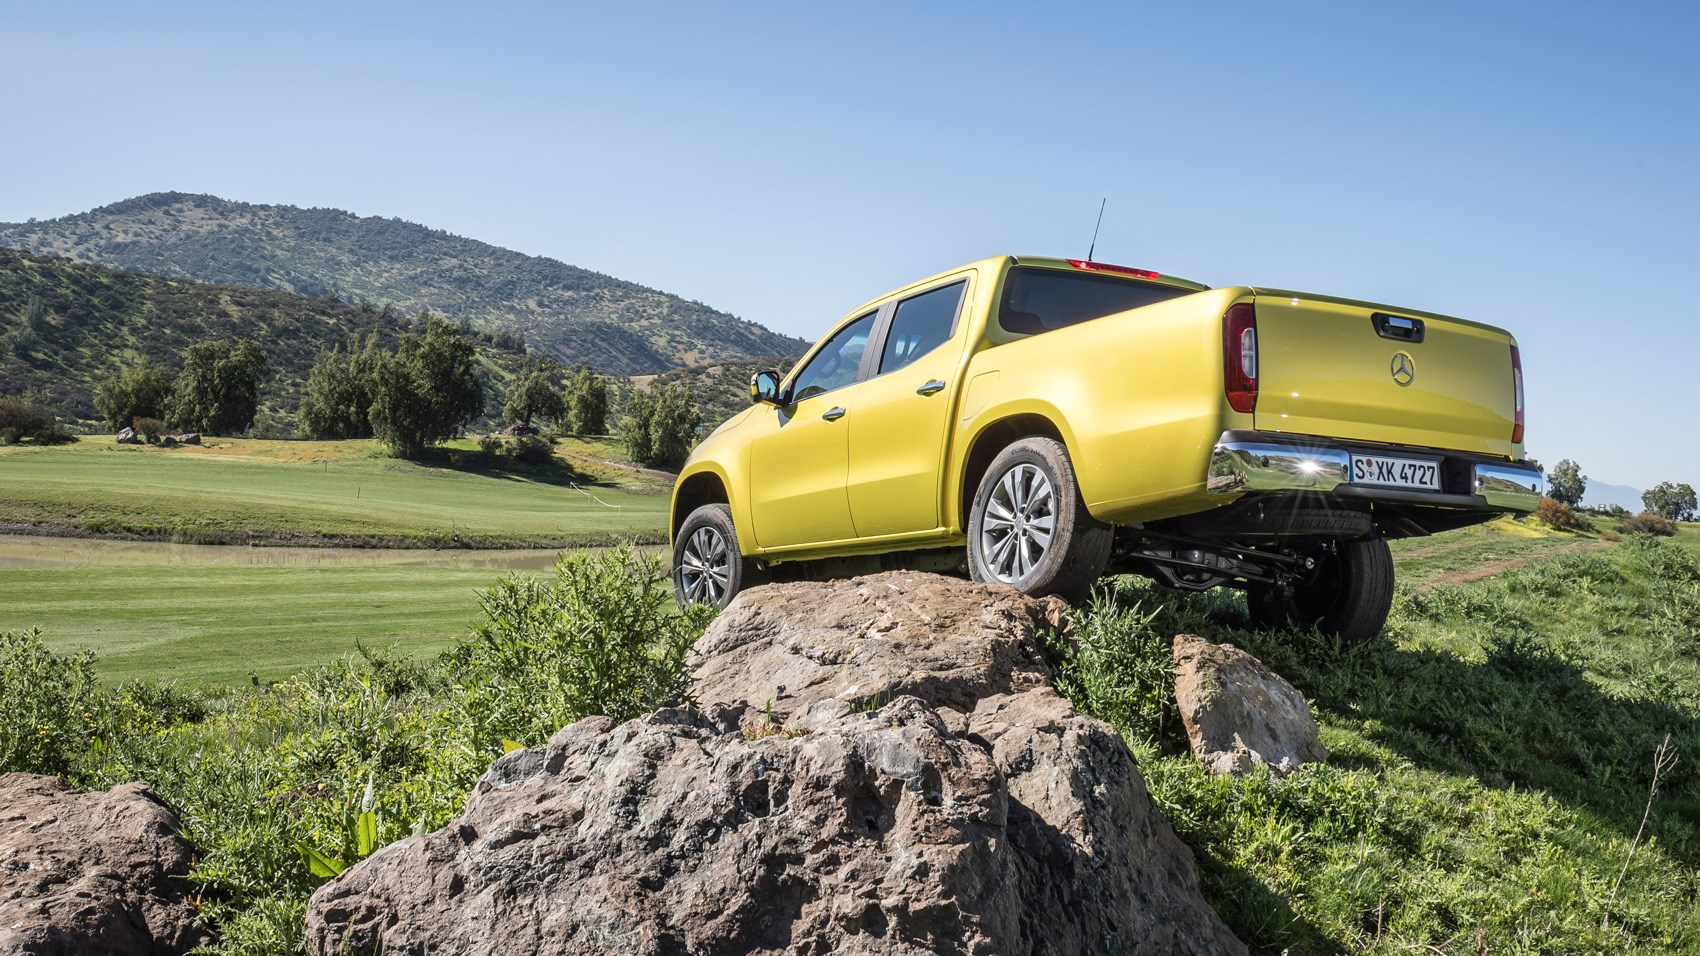 Mercedes X-Class yellow off-road